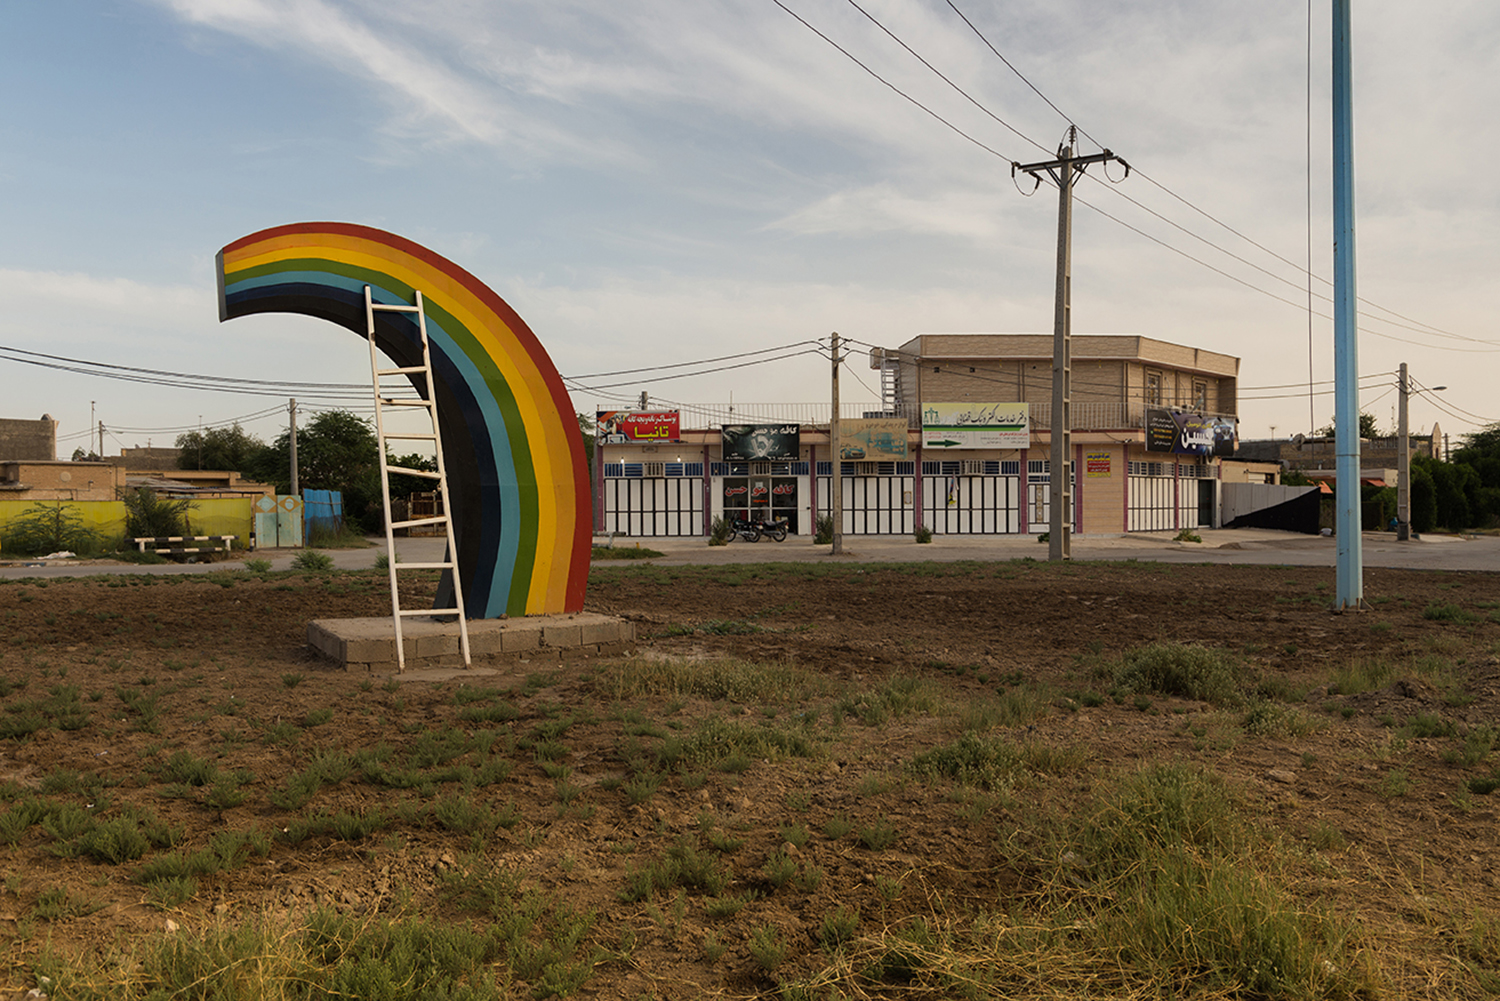 The sculpture of a rainbow and a ladder in Abadan, Iran.